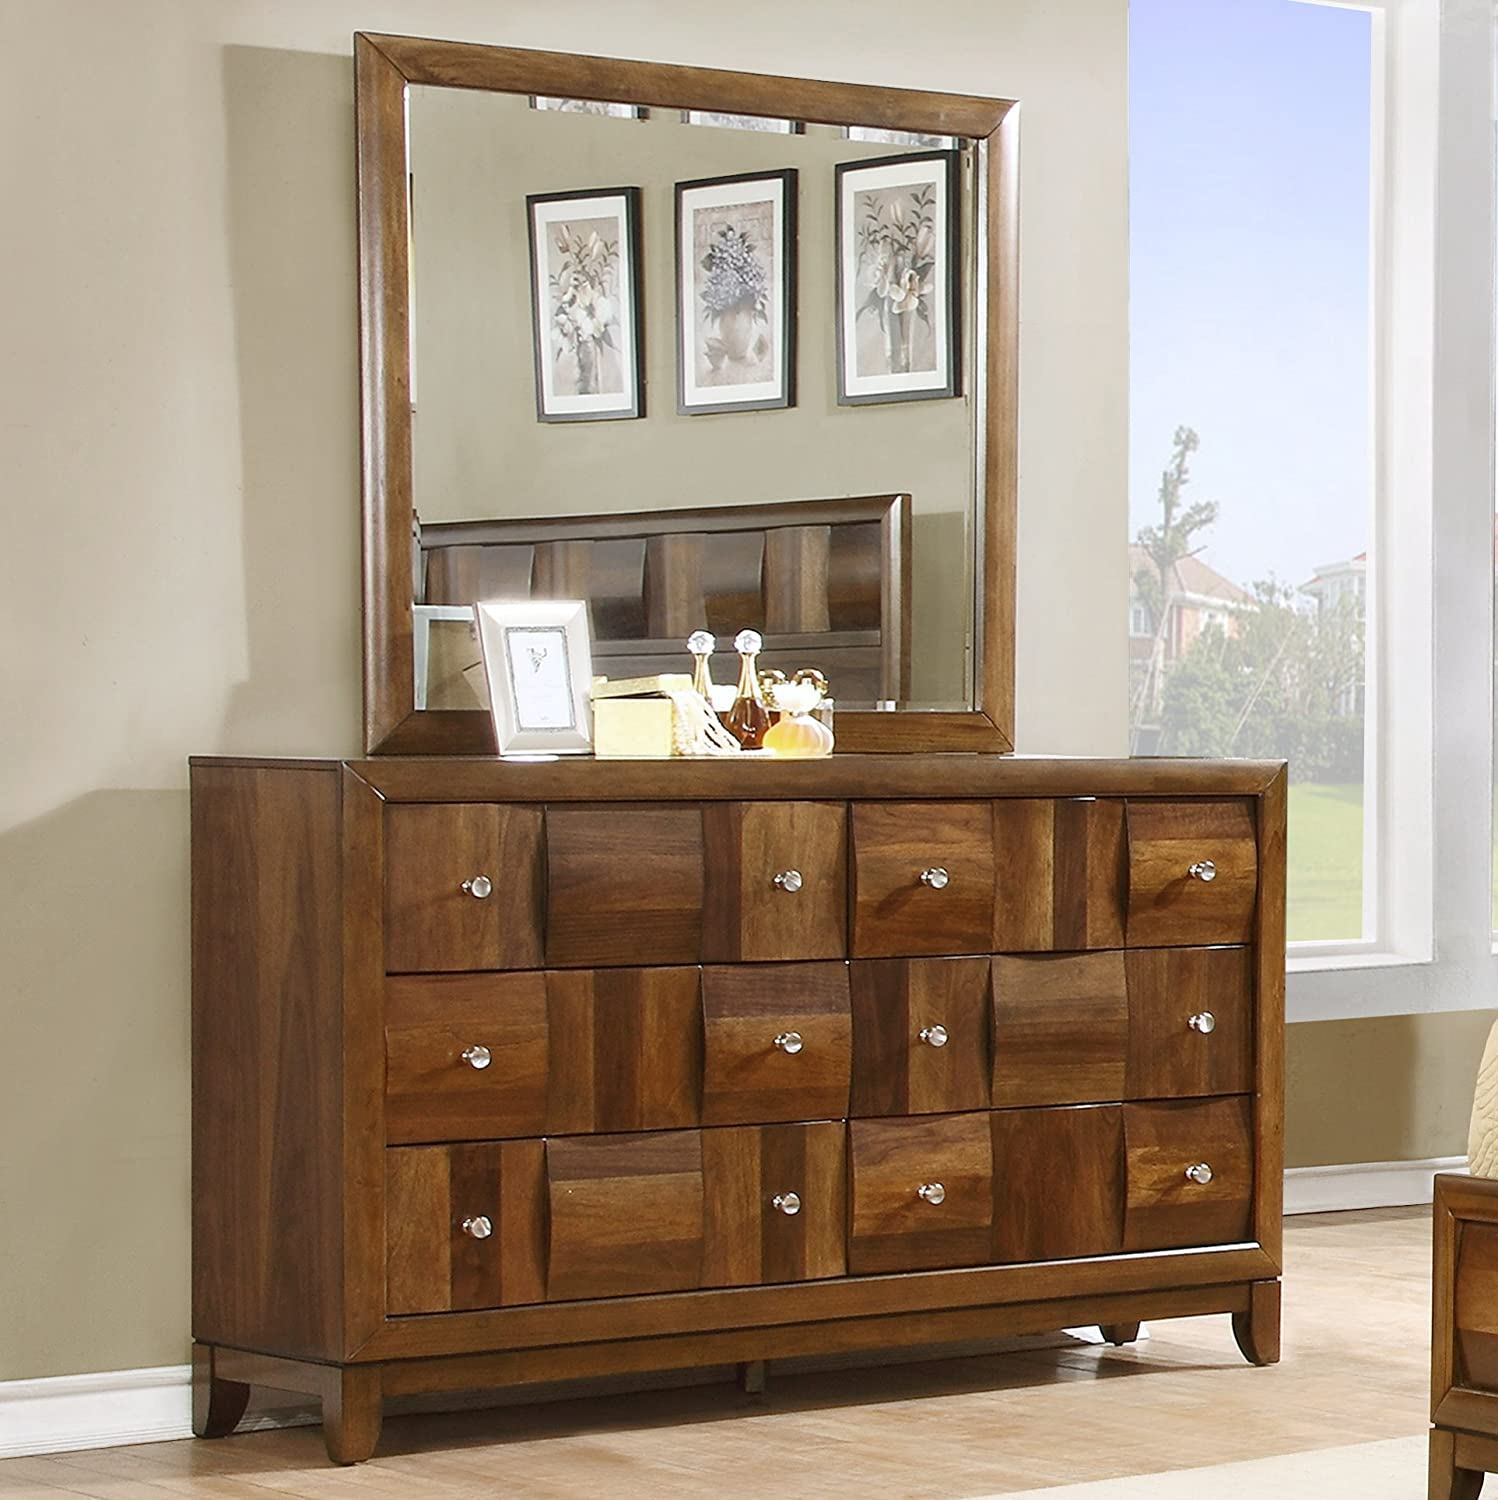 Amazon.com: Roundhill Furniture Calais Solid Wood Construction Bedroom Set  With Bed, Dresser, Mirror, 2 Night Stands, King, Walnut: Kitchen U0026 Dining